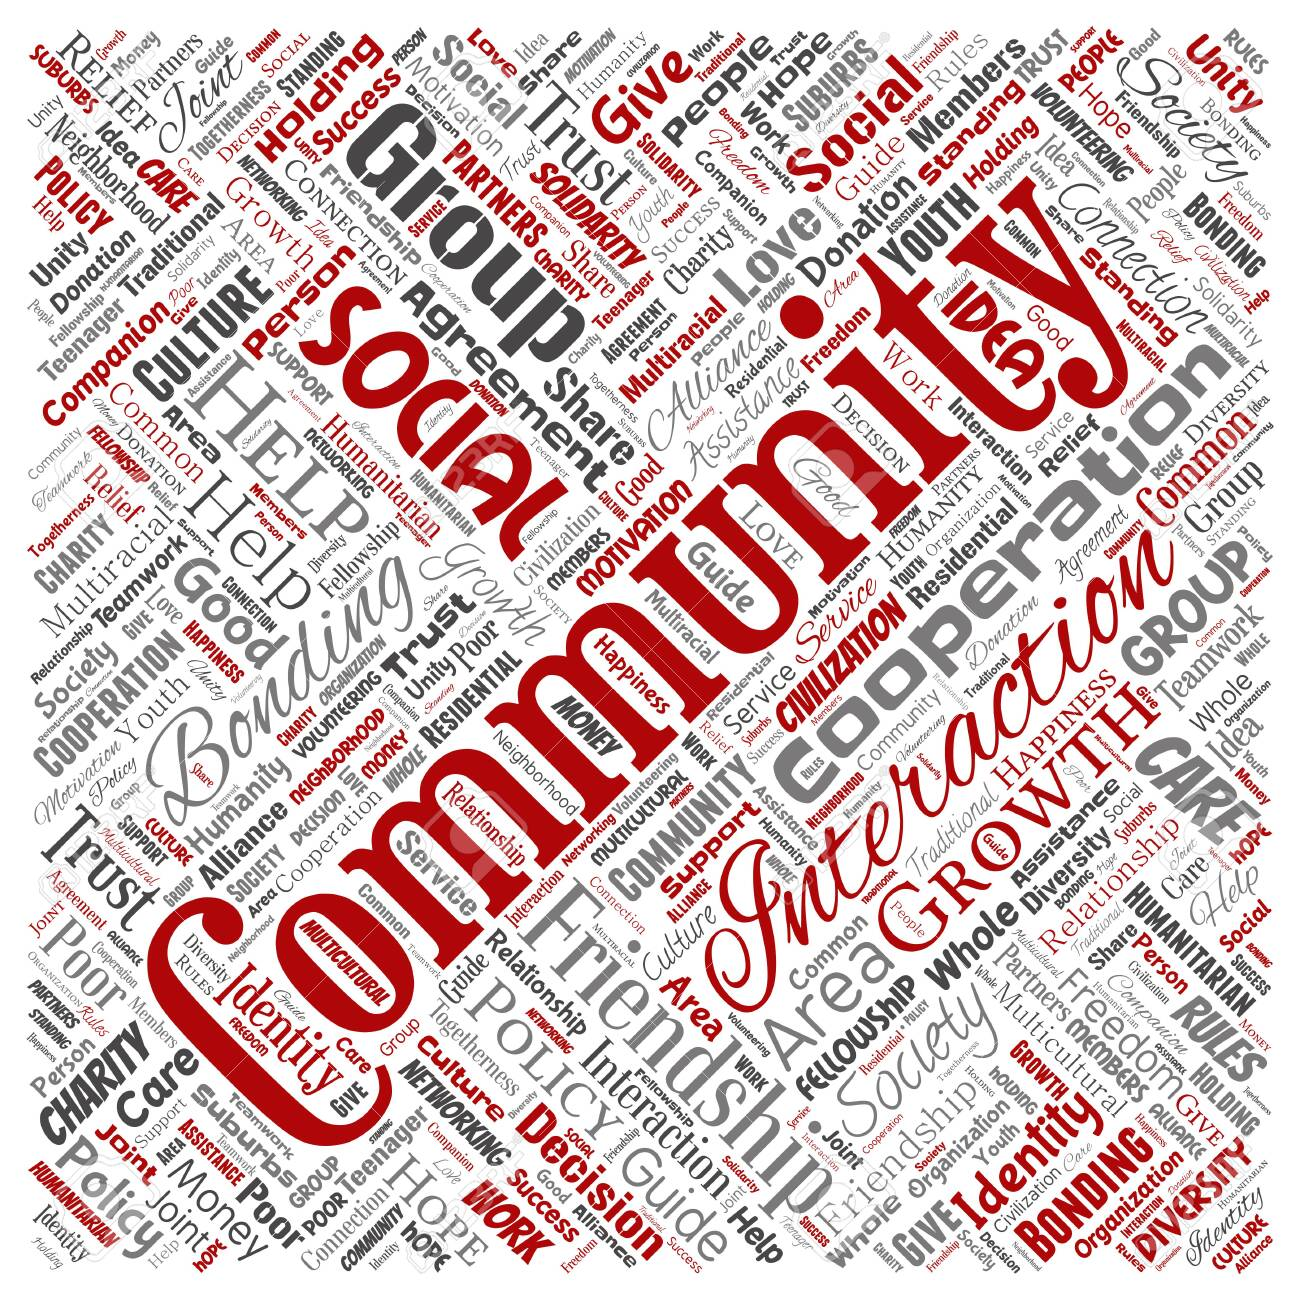 Conceptual community, social, connection square red word cloud